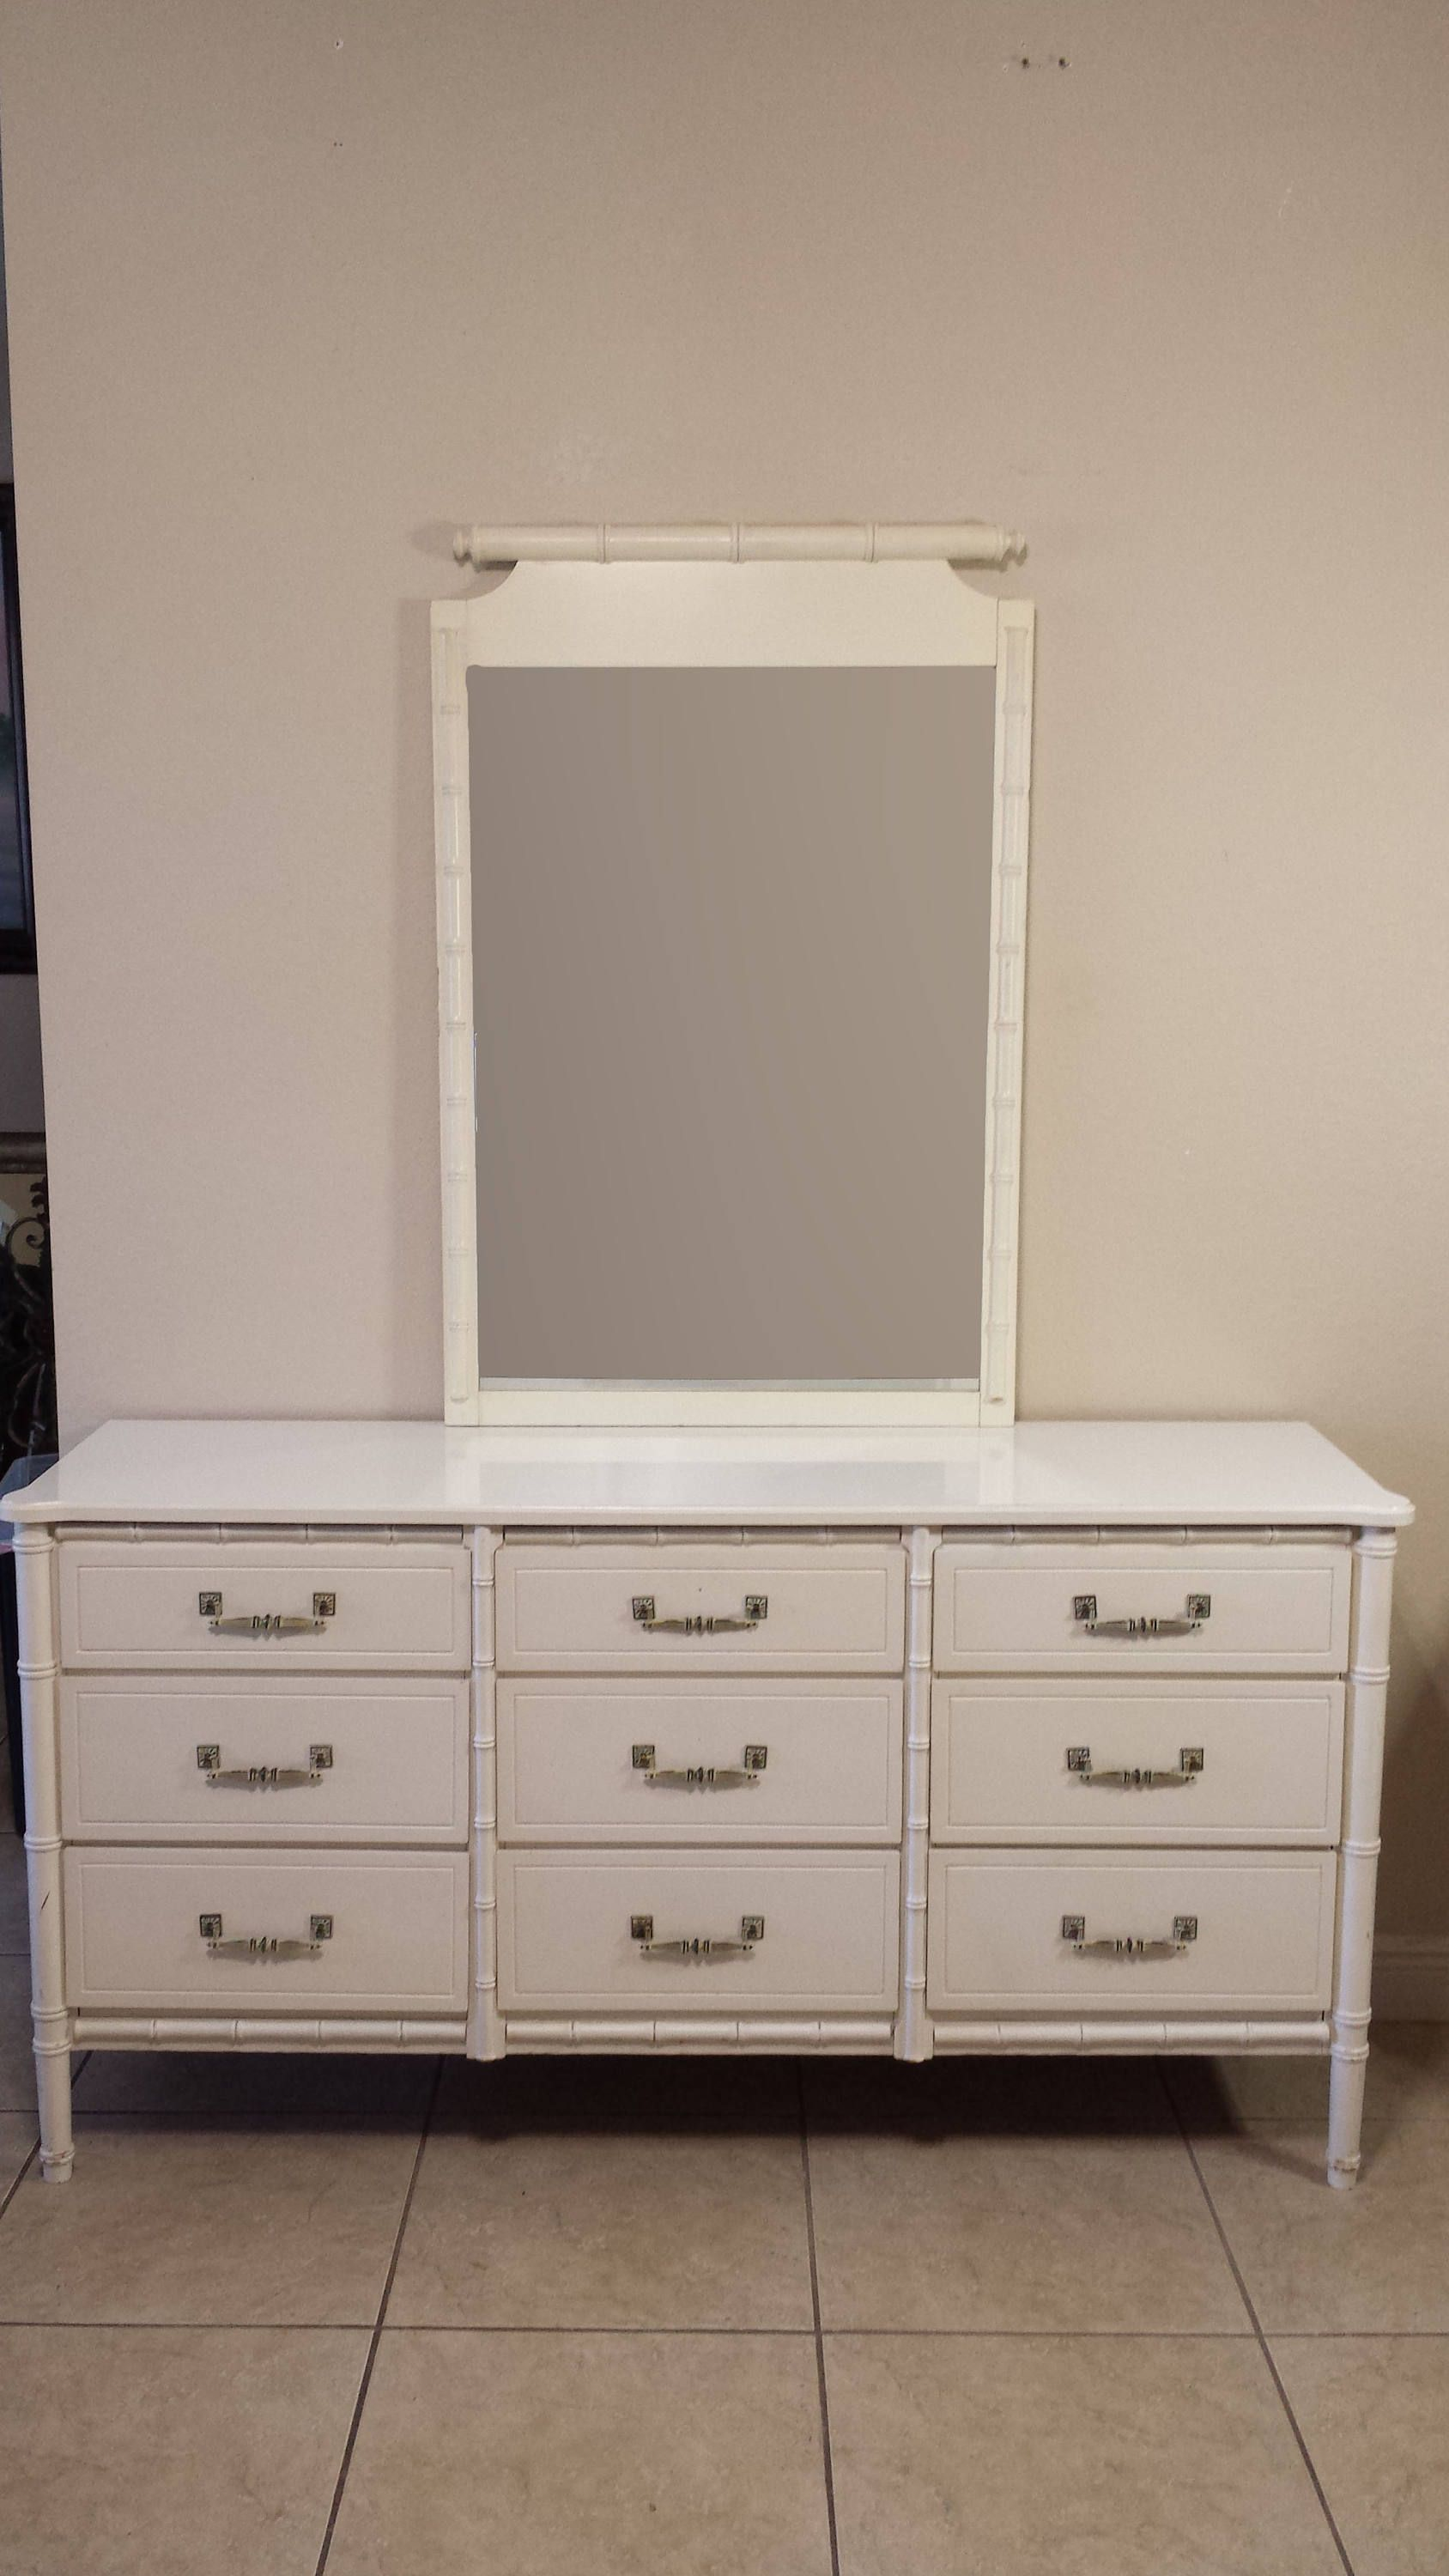 Henry Link Faux Bamboo Dresser With Mirror Reproduction By Degfurnituredesigns On Etsy